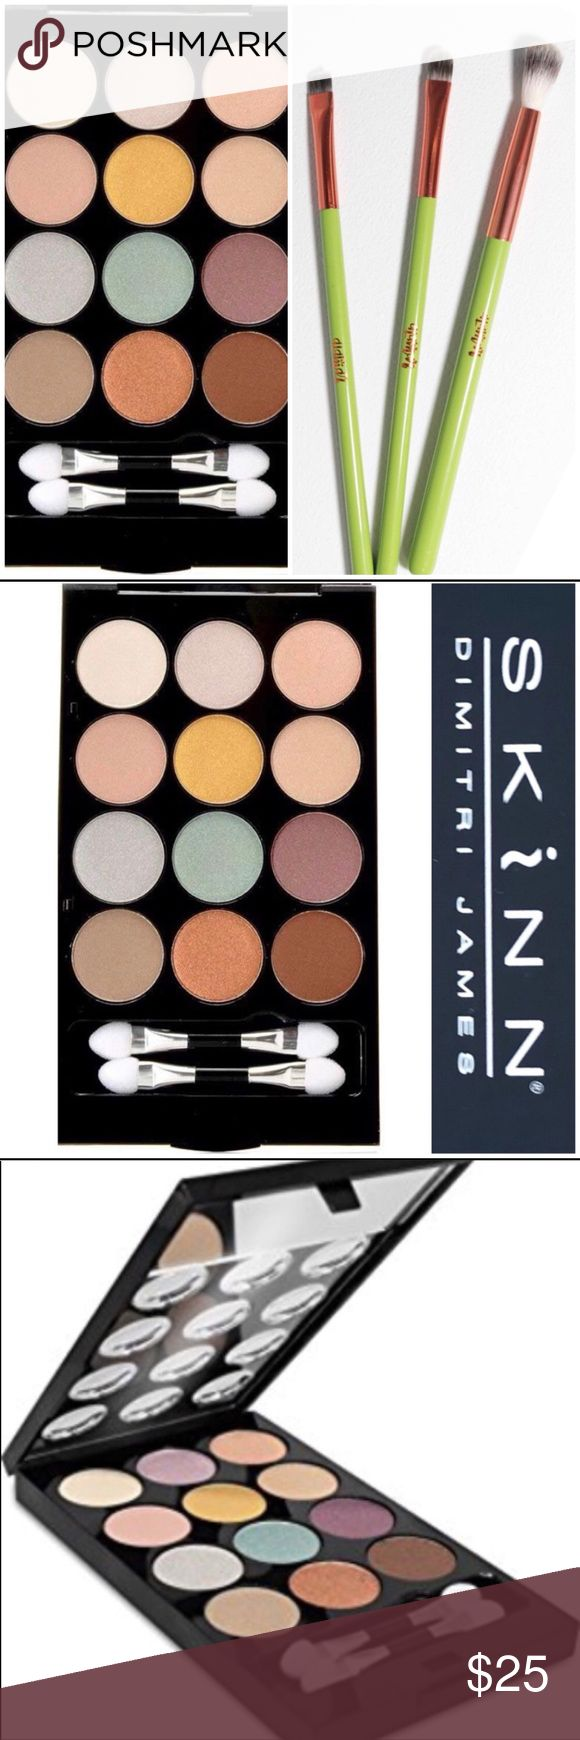 Eyeshadows and Brush Set bundle SKINN Luxe eyeshadows